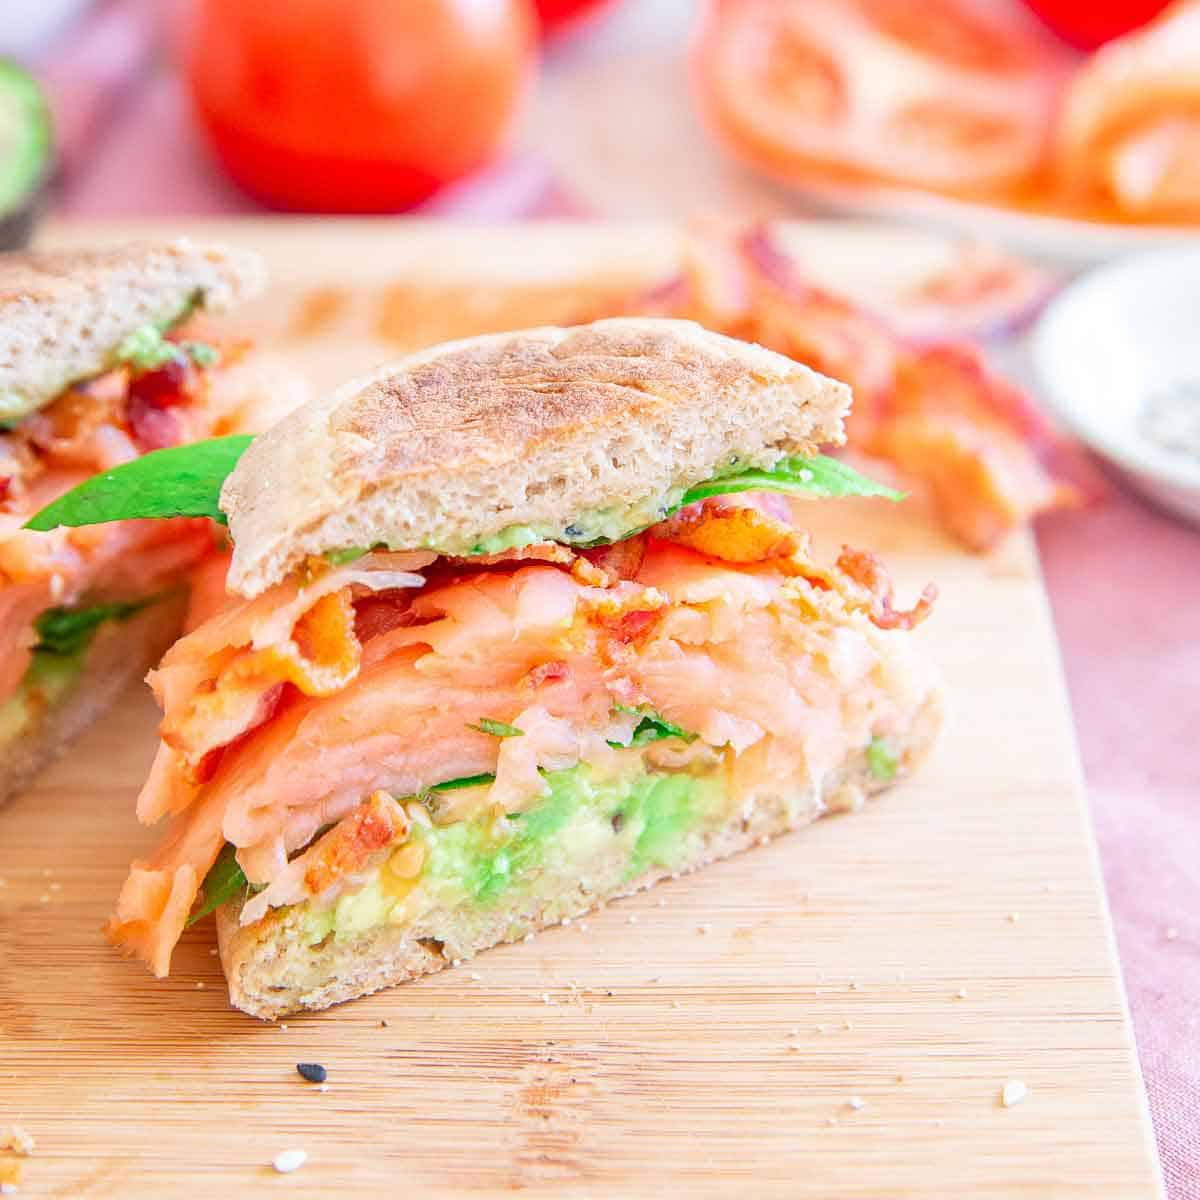 Enjoy this salmon BLT with smashed avocado for breakfast or lunch.